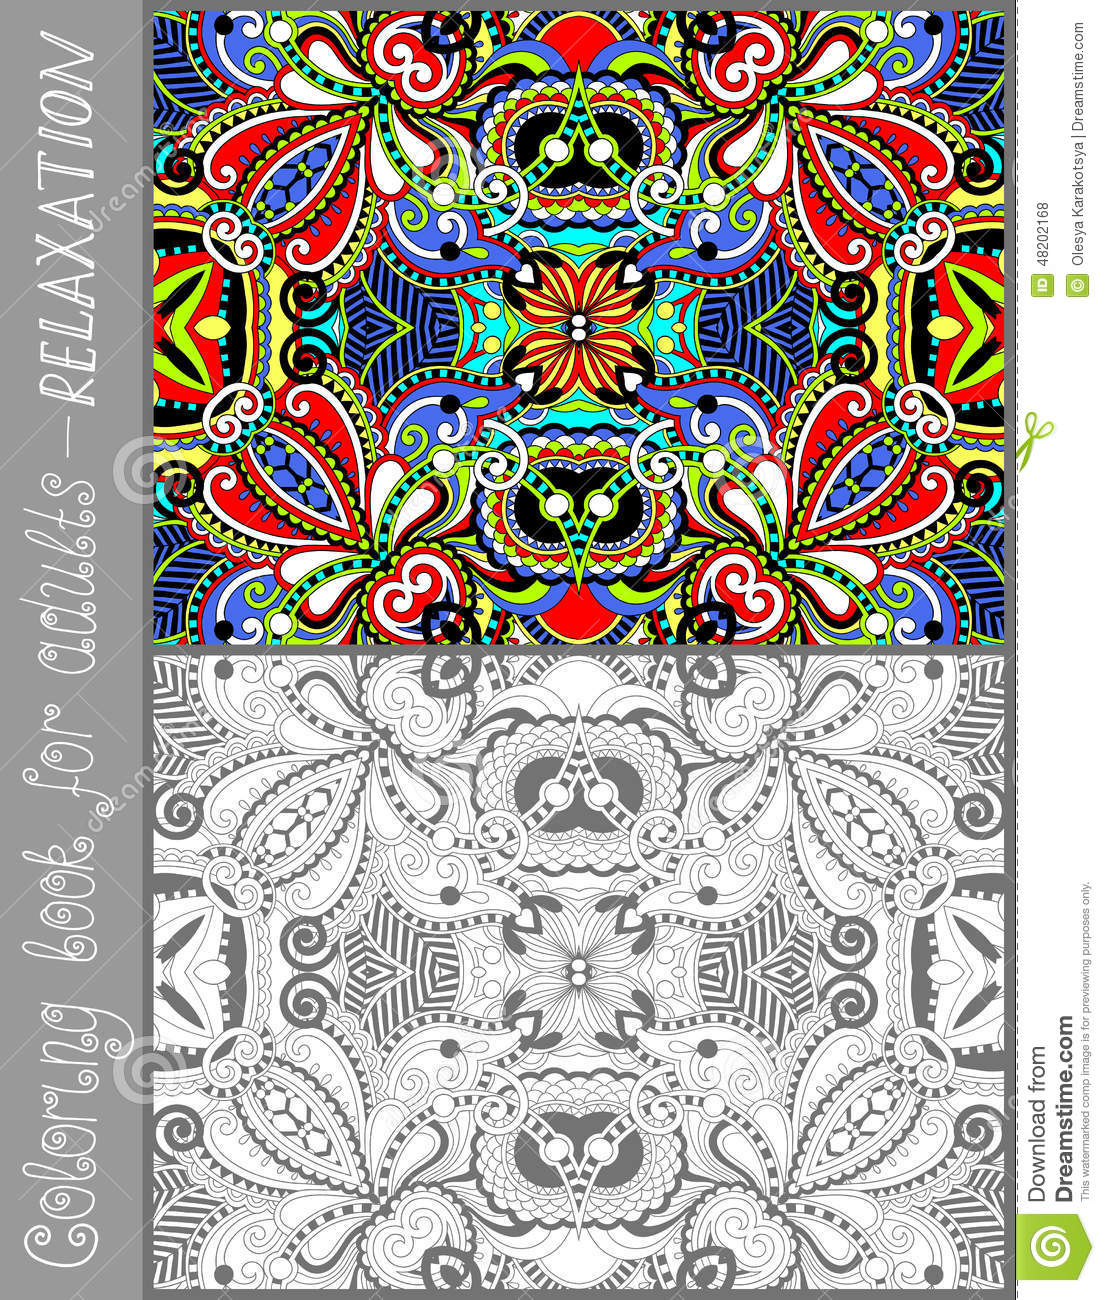 Flower designs coloring book - Coloring Book Page For Adults Flower Paisley Stock Vector